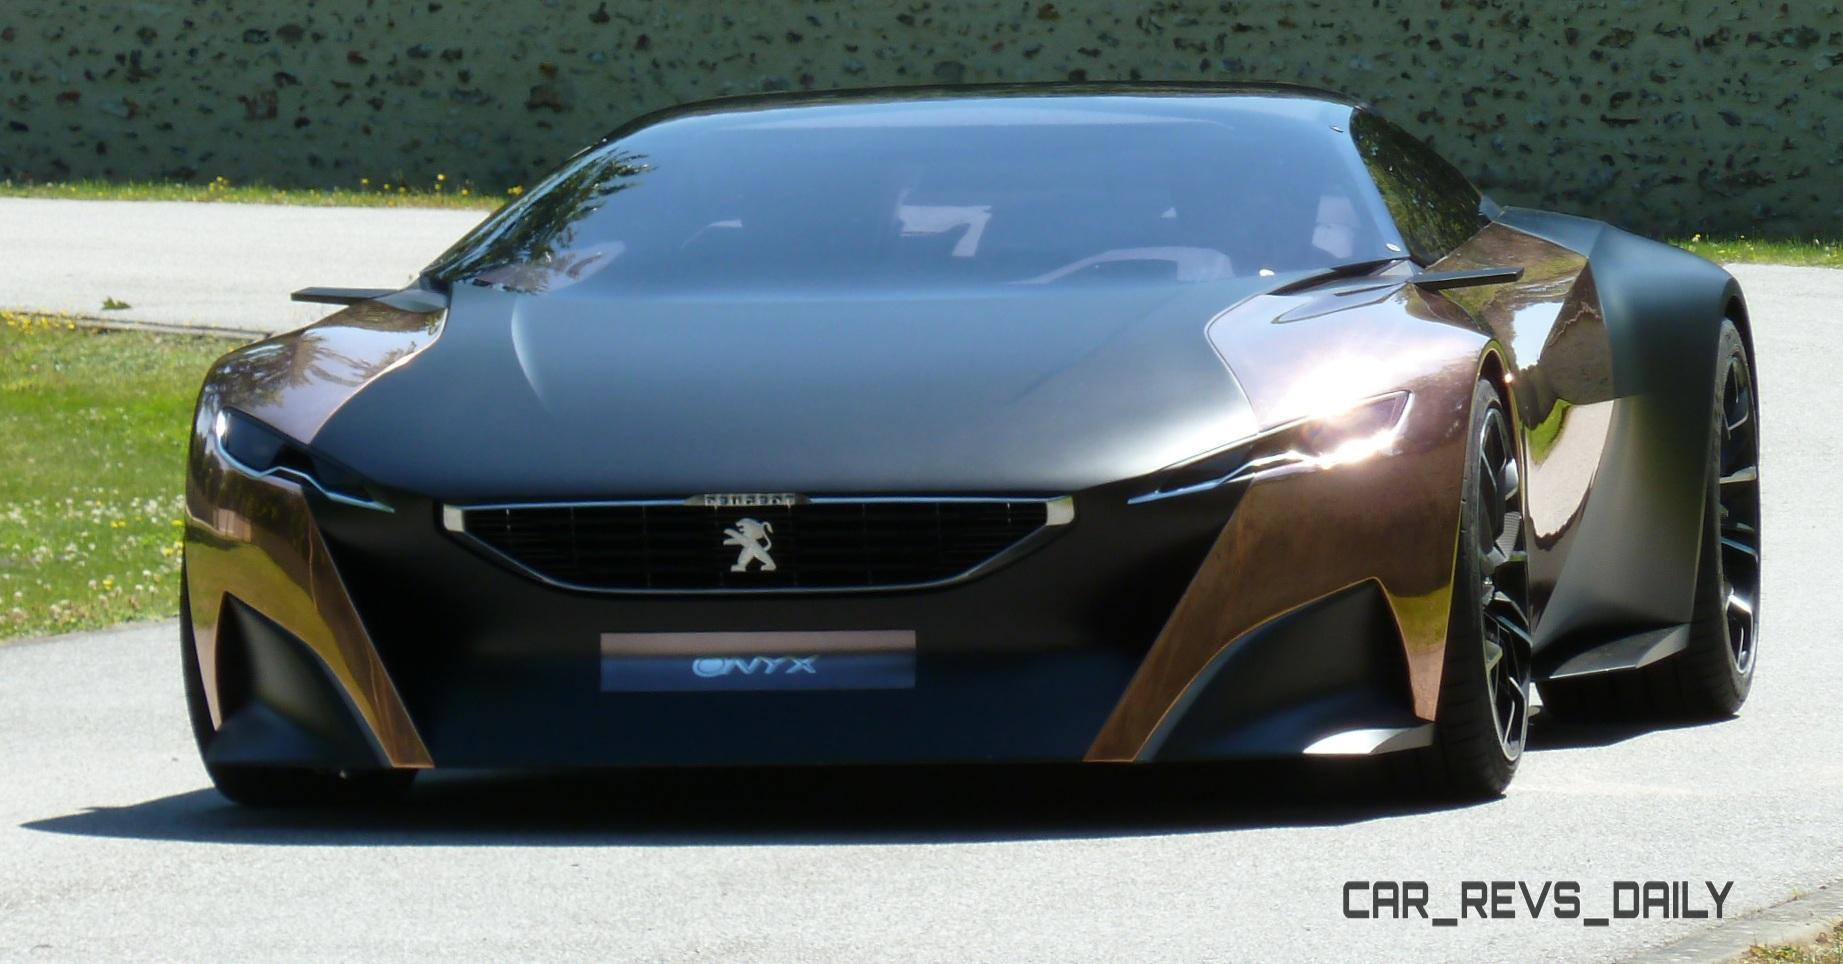 Concept Flashback - 2012 Peugeot ONYX Is Mixed-Media Hypercar Delight 3